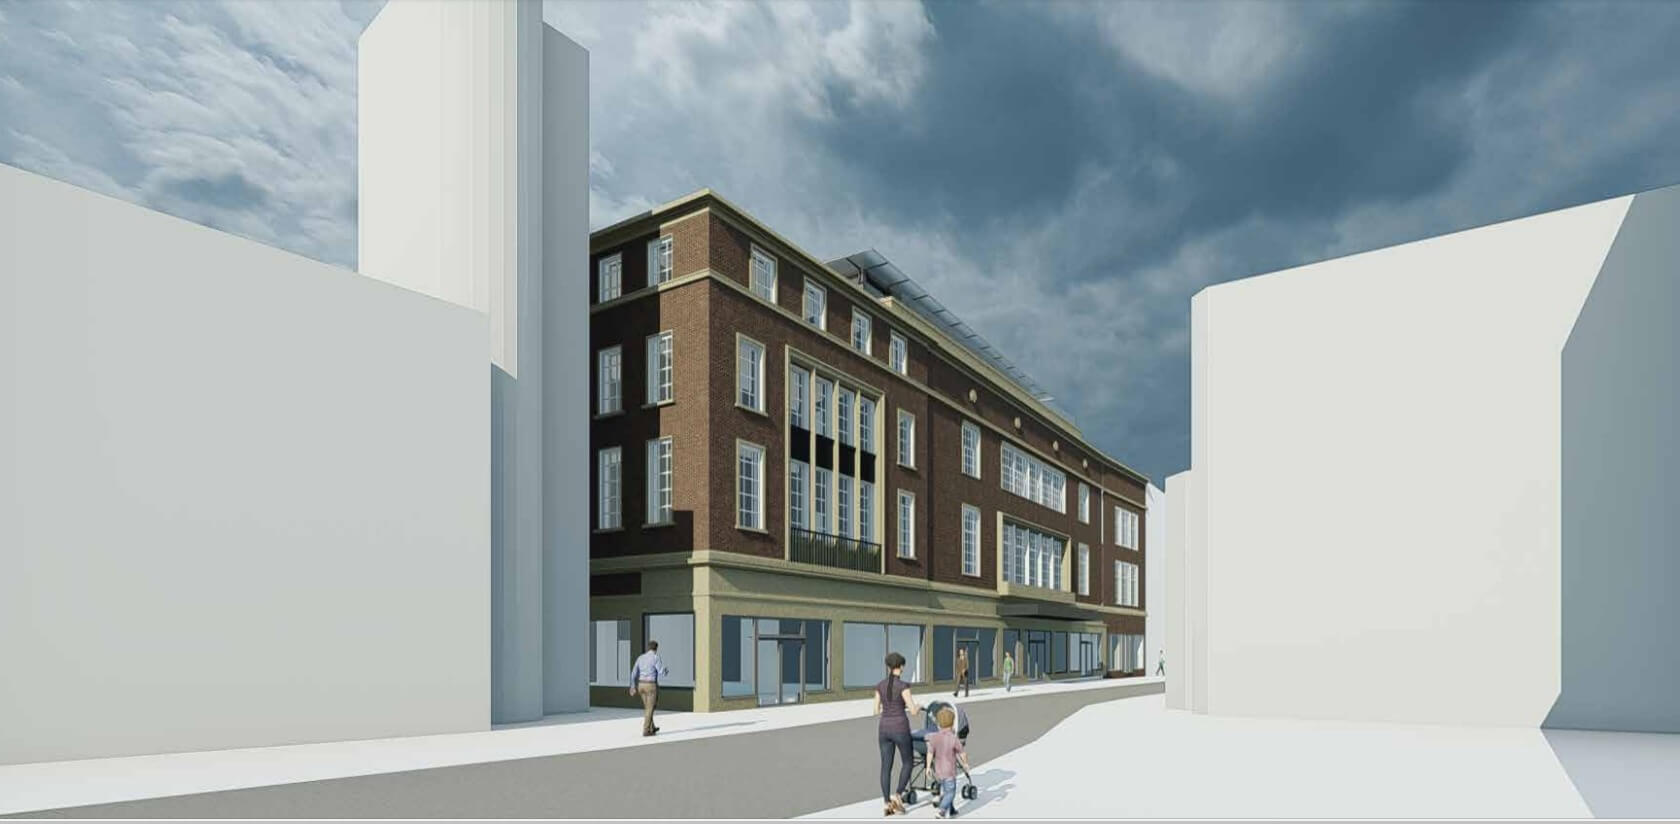 A new artist's impression of proposals for the former House of Fraser site in Exeter. Image from the planning application